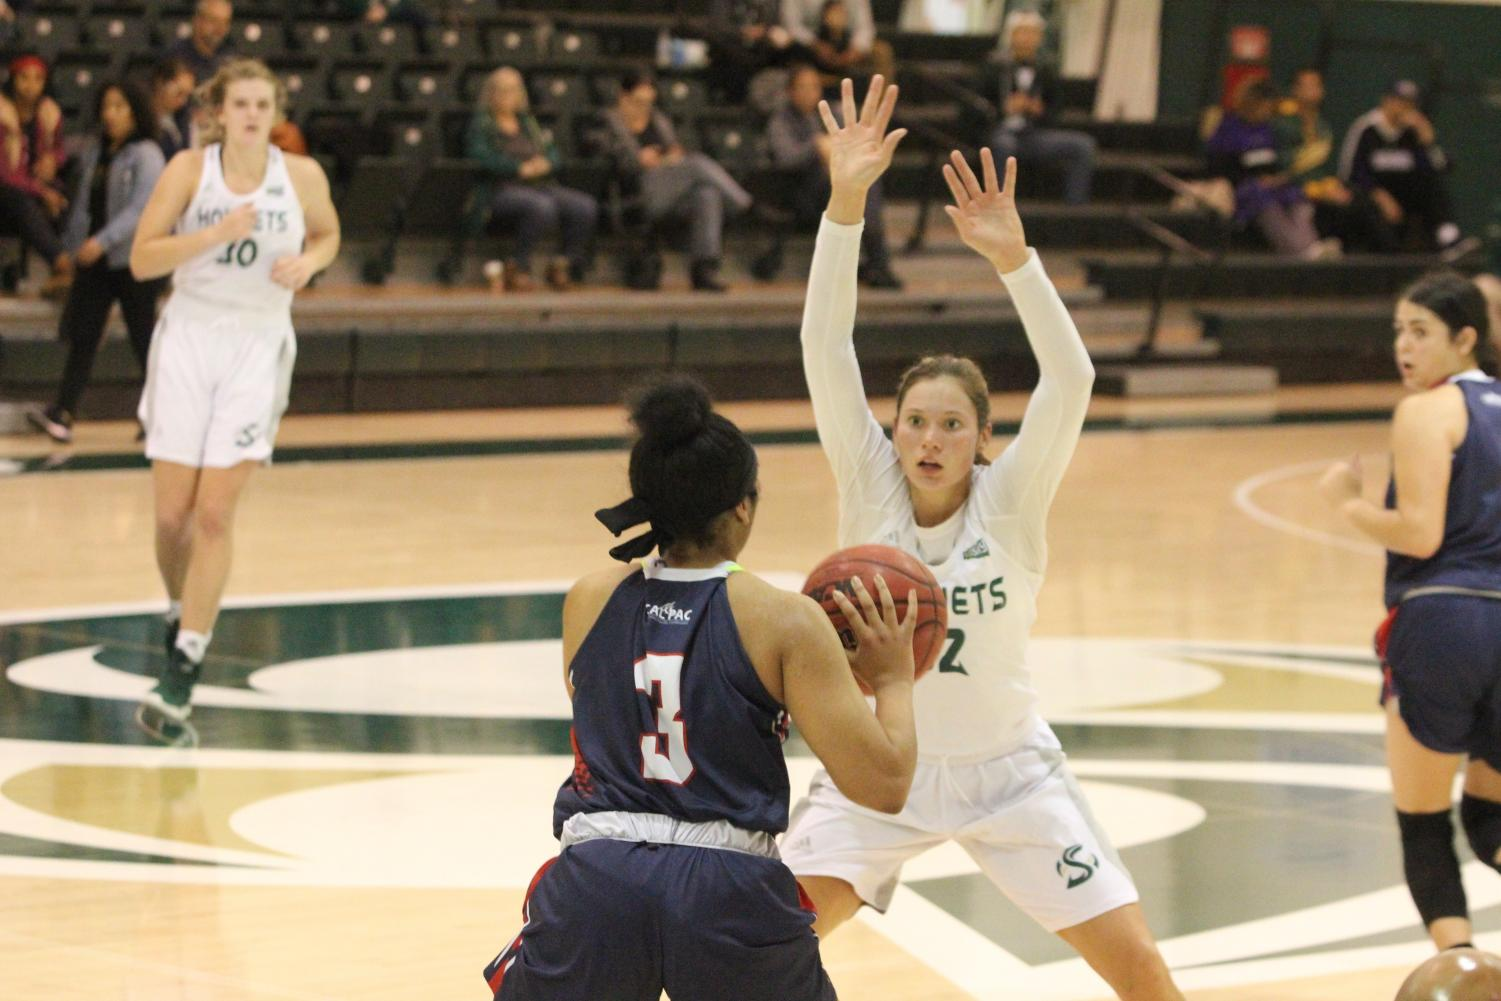 Sac State junior forward Hannah Friend guards an Antelope Valley player during the Hornets 86-80 win Saturday.